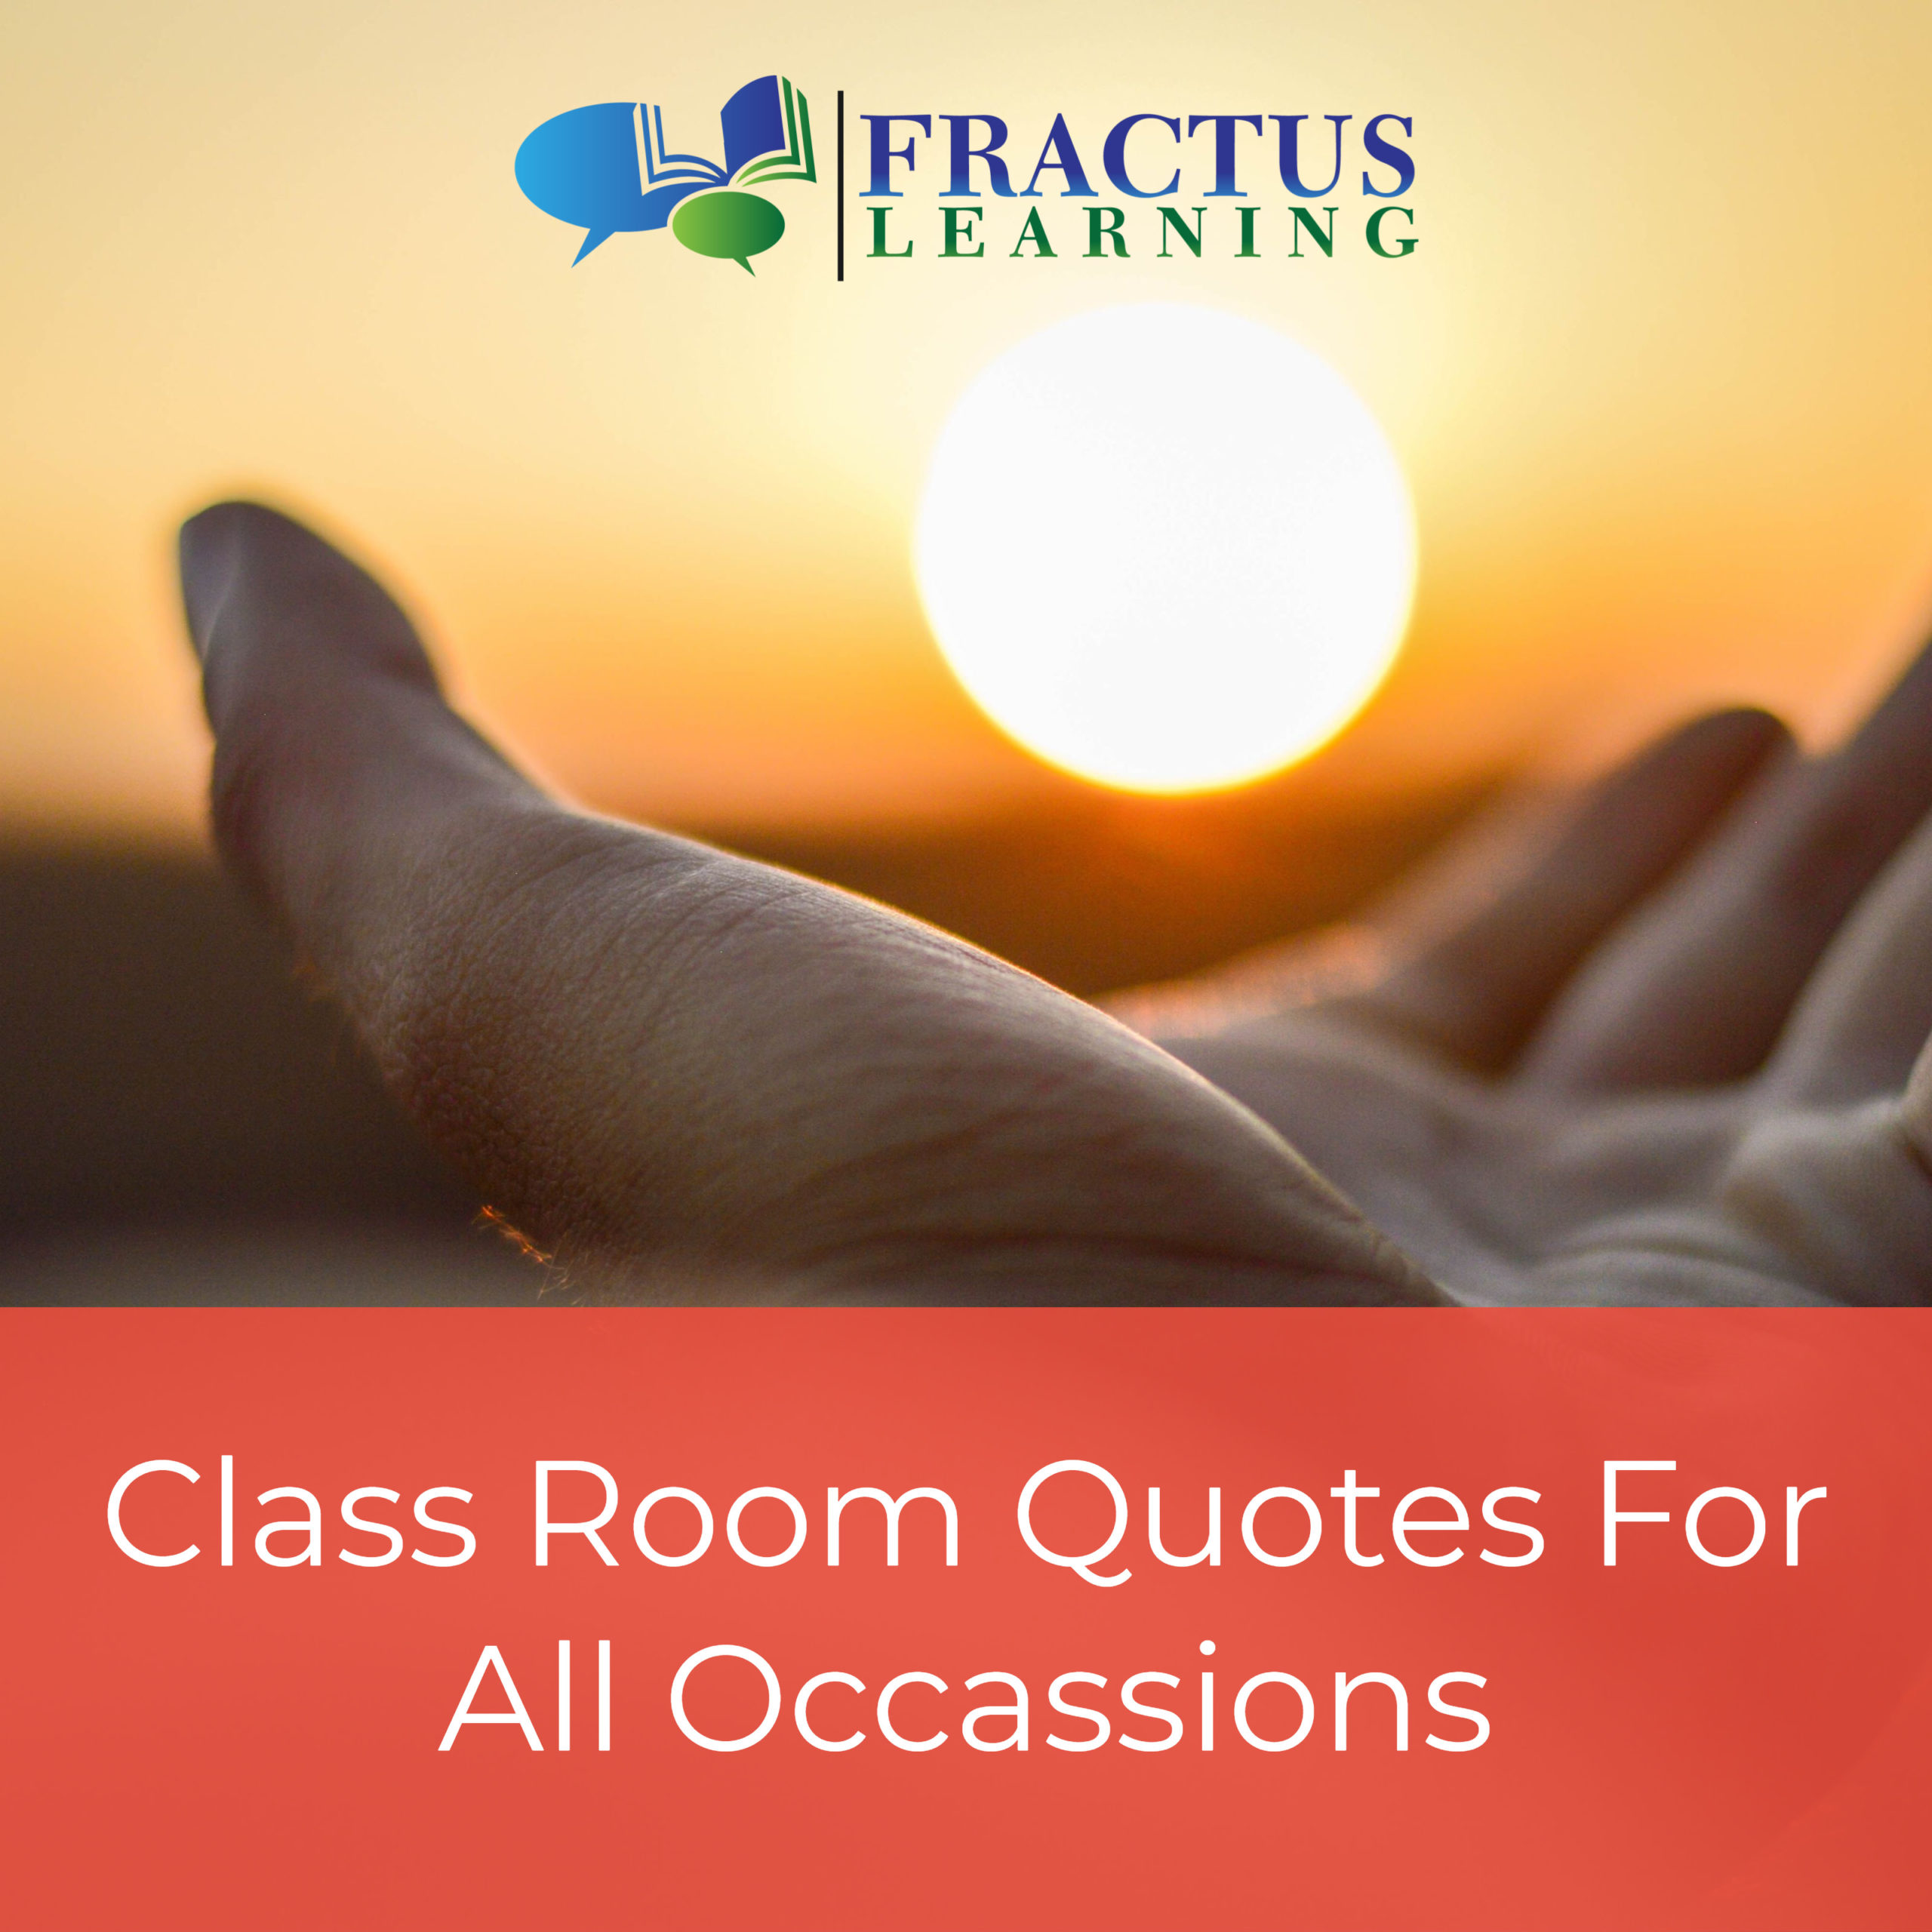 class room quotes featured image